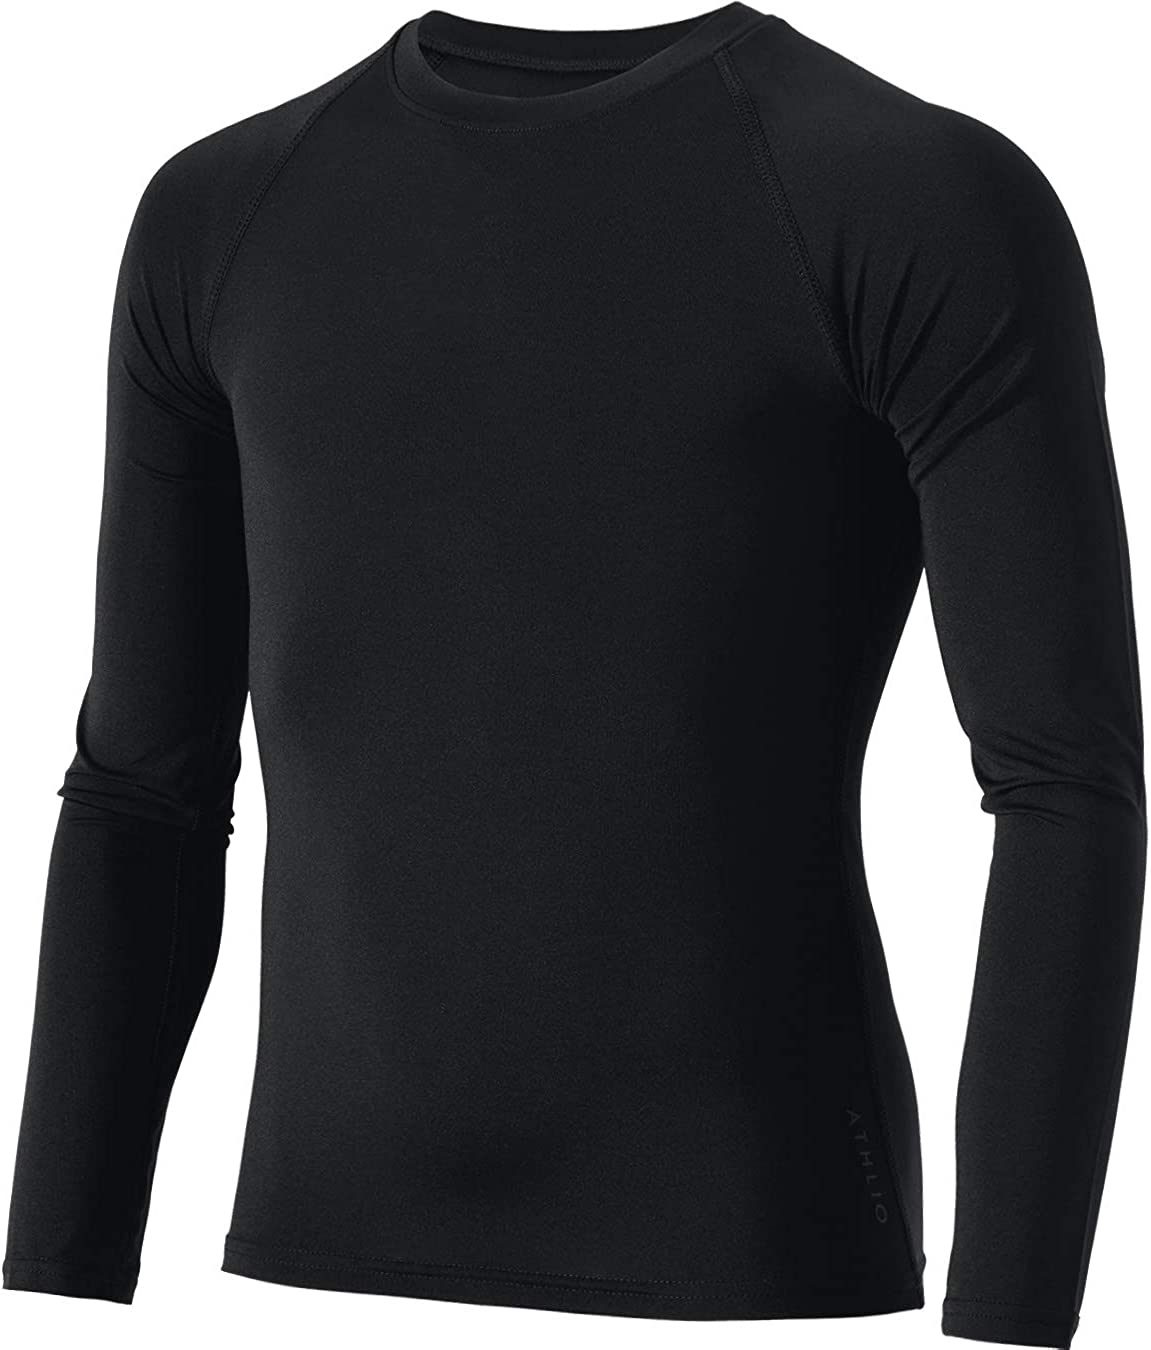 ATHLIO Kids Compression Running Baselayer Cool Dry Sports Top /& Bottom Set